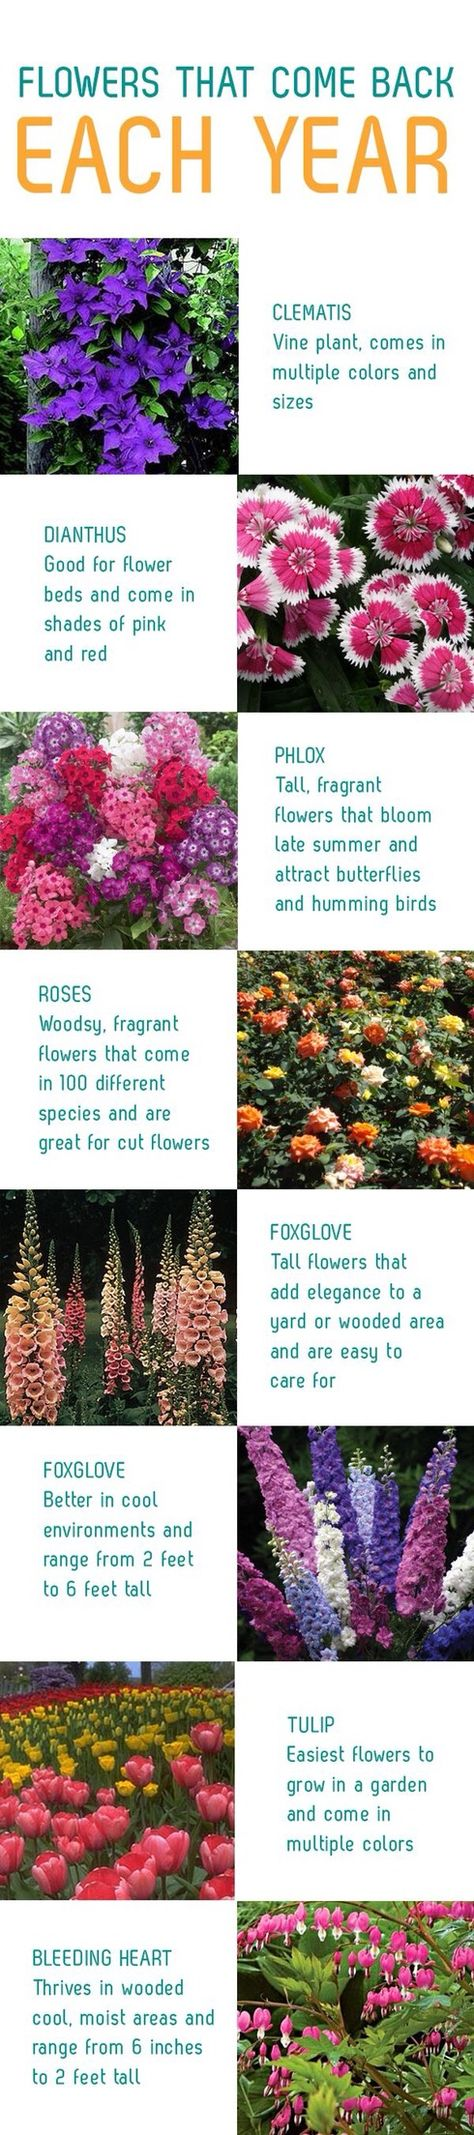 best images about Garden Growin on Pinterest